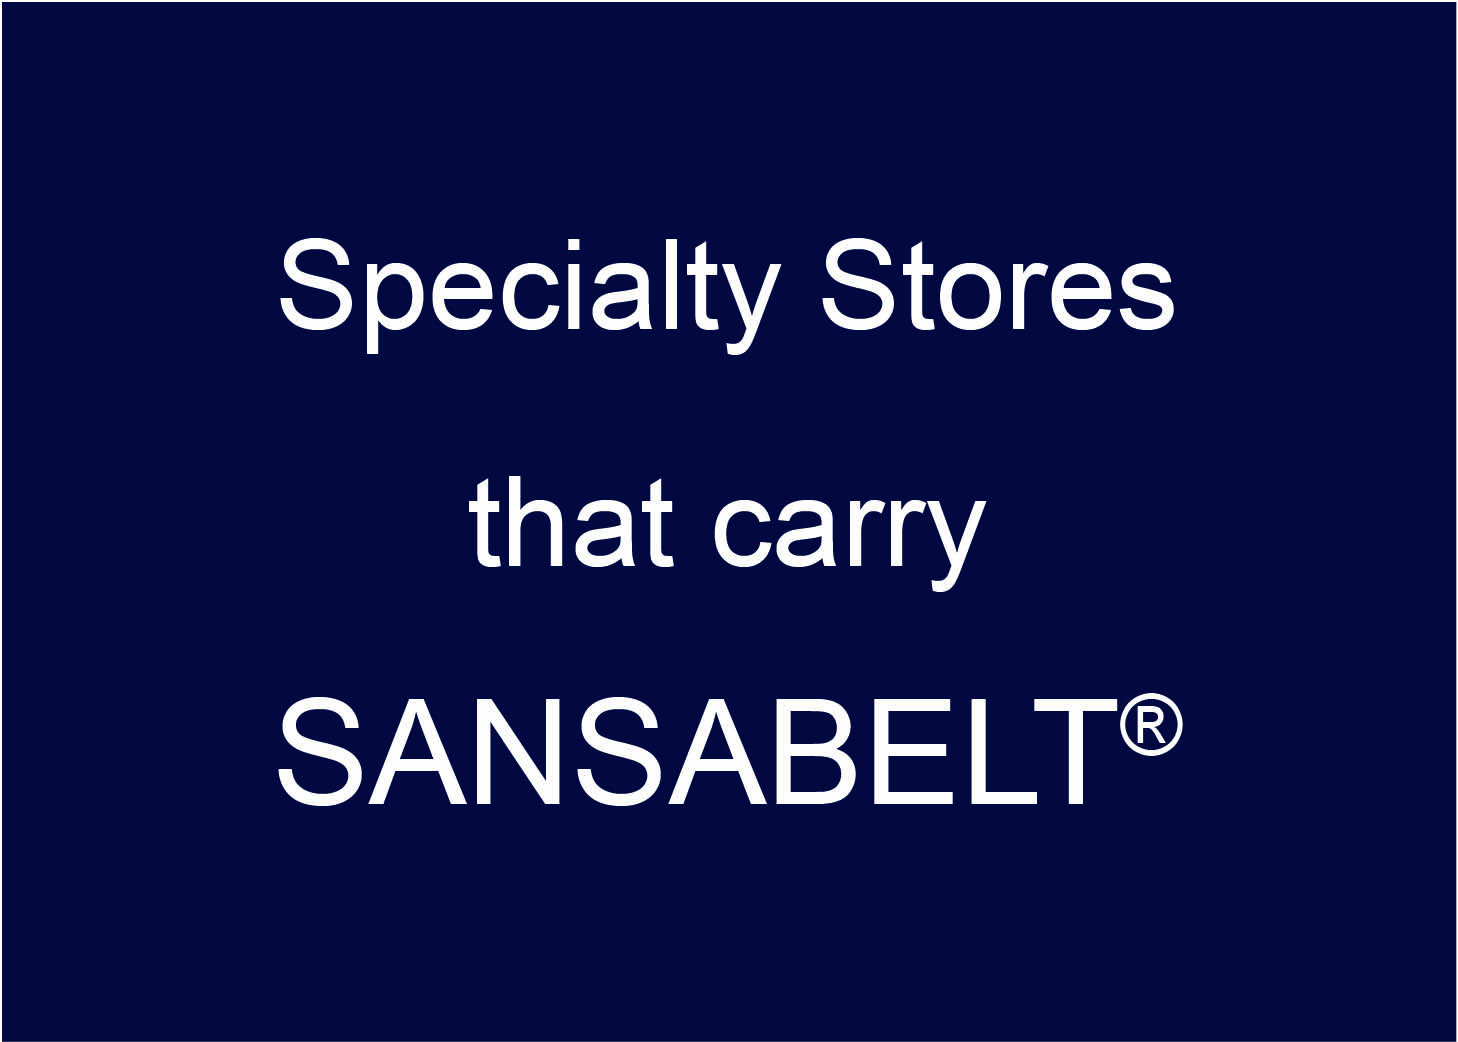 Specialty Stores Carrying Sansabelt